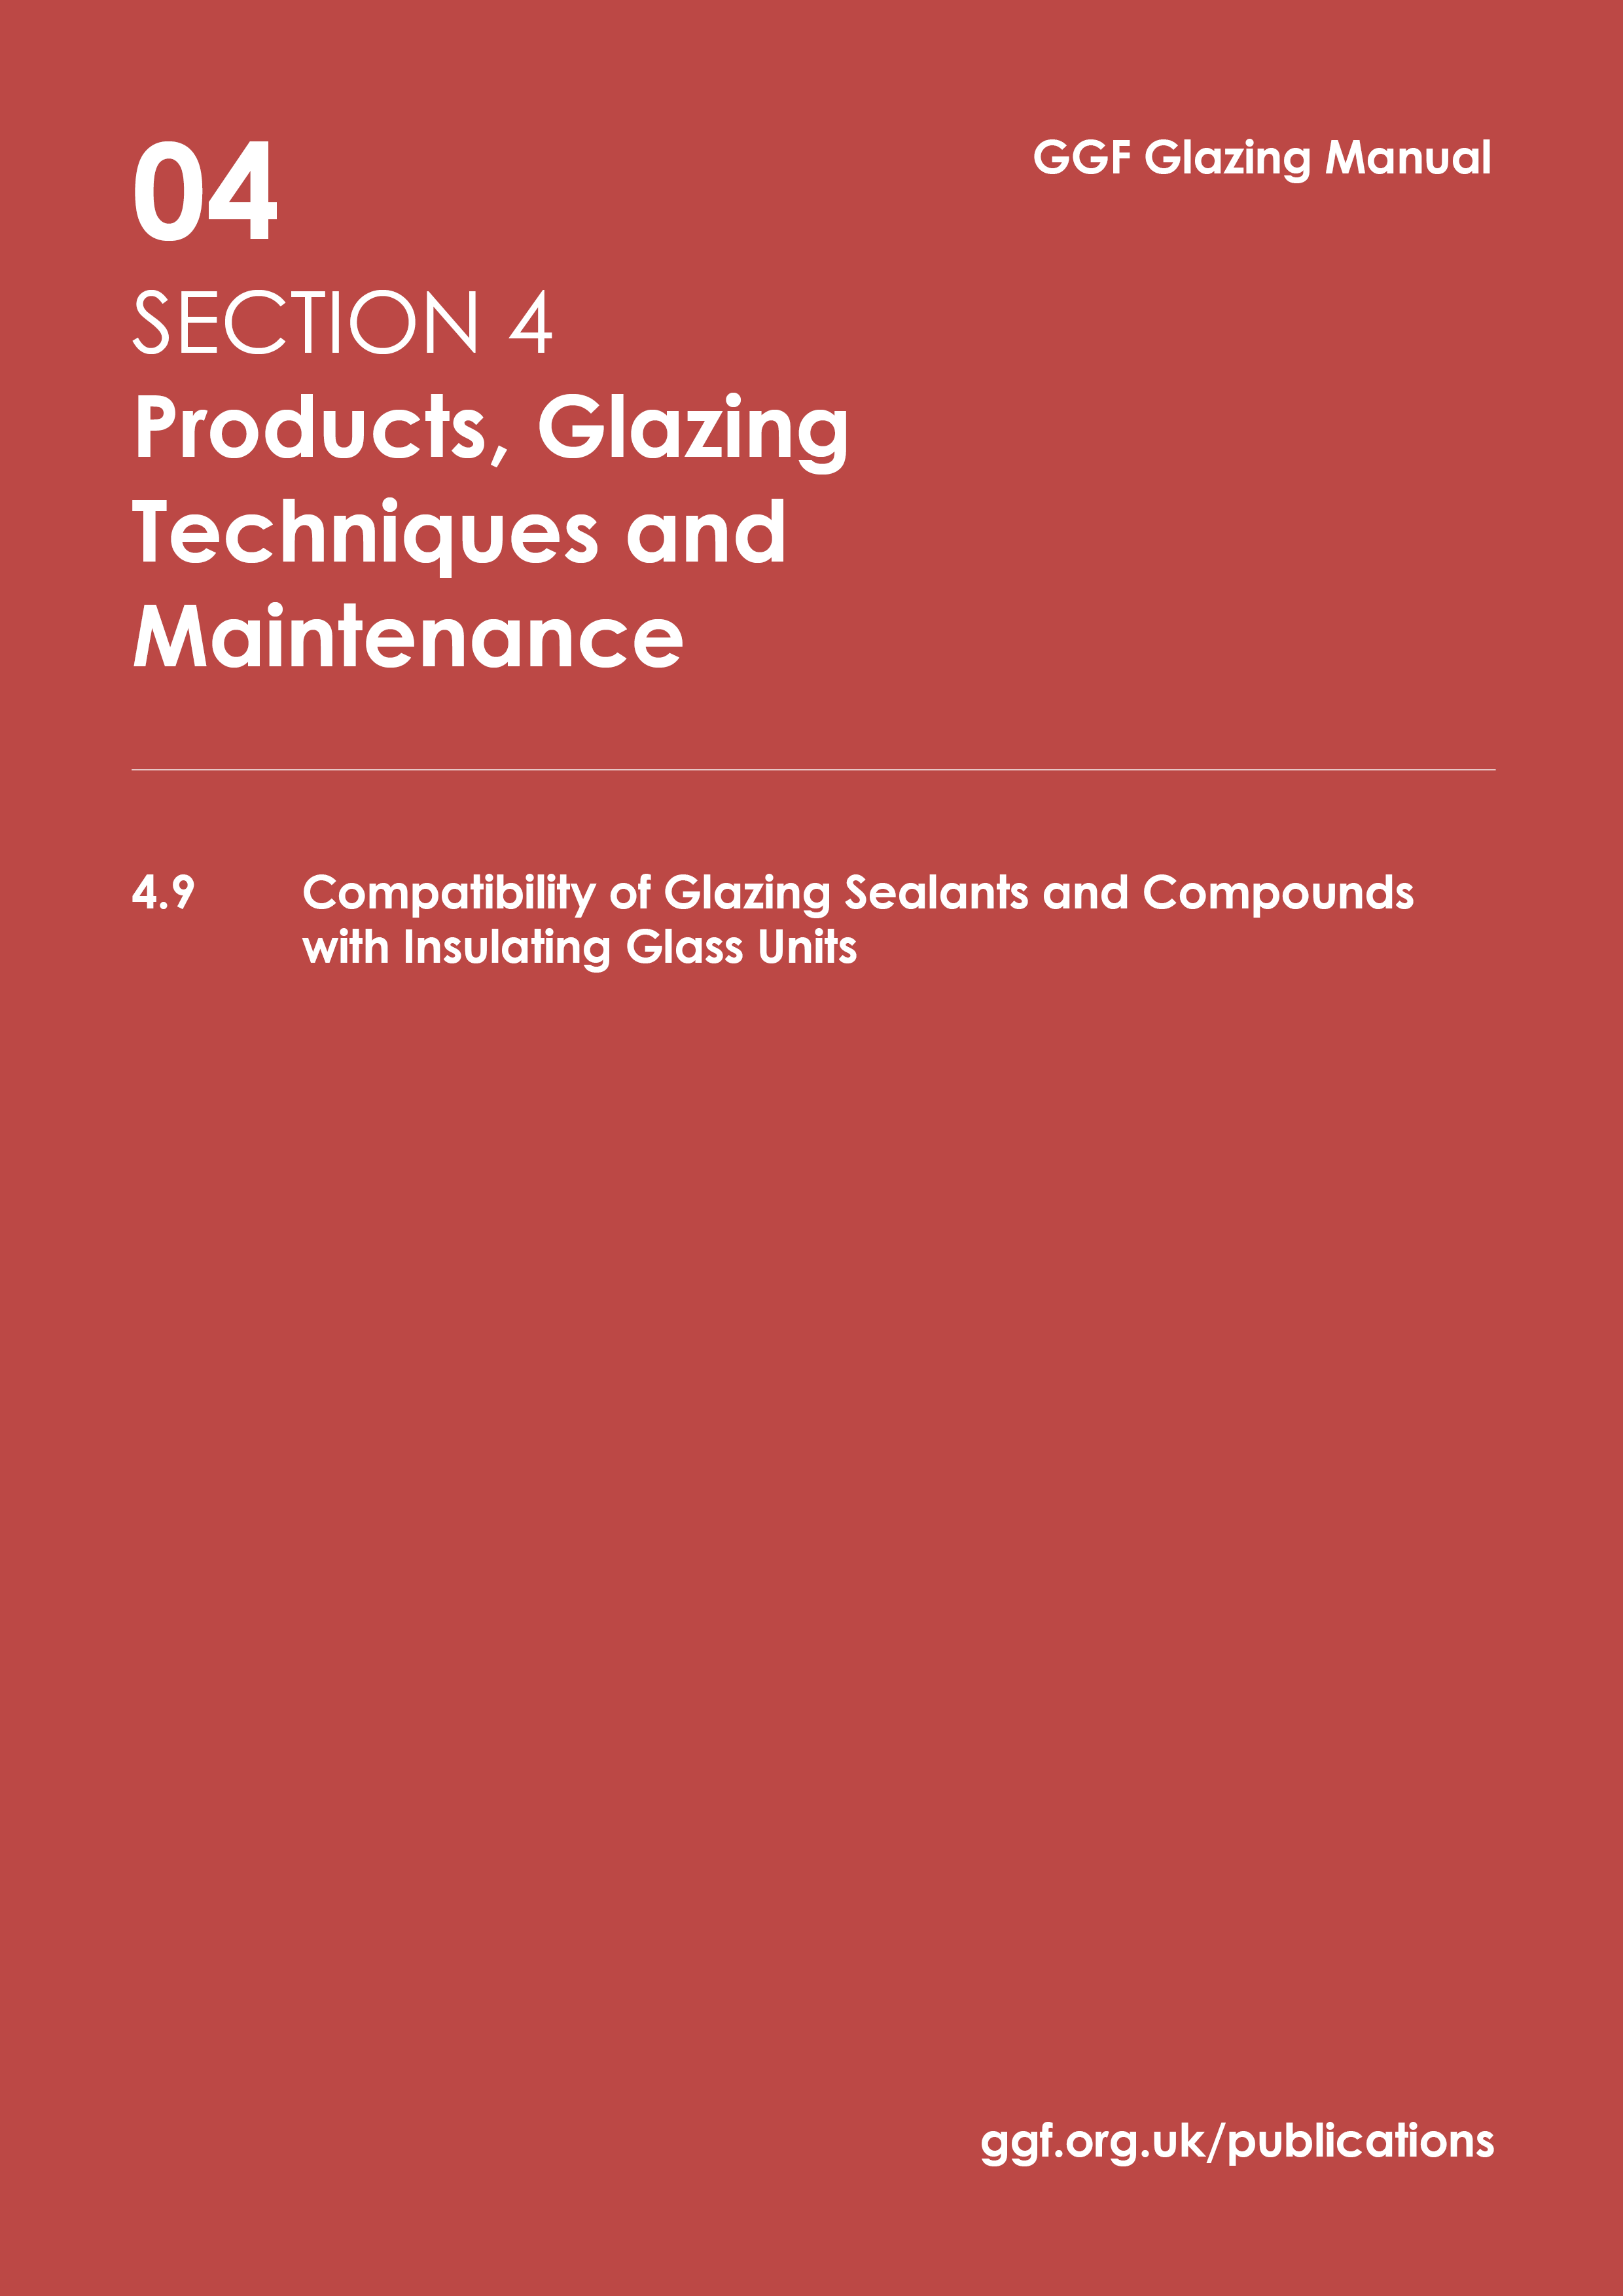 4 9 Compatibility of Glazing Sealants and Compounds with